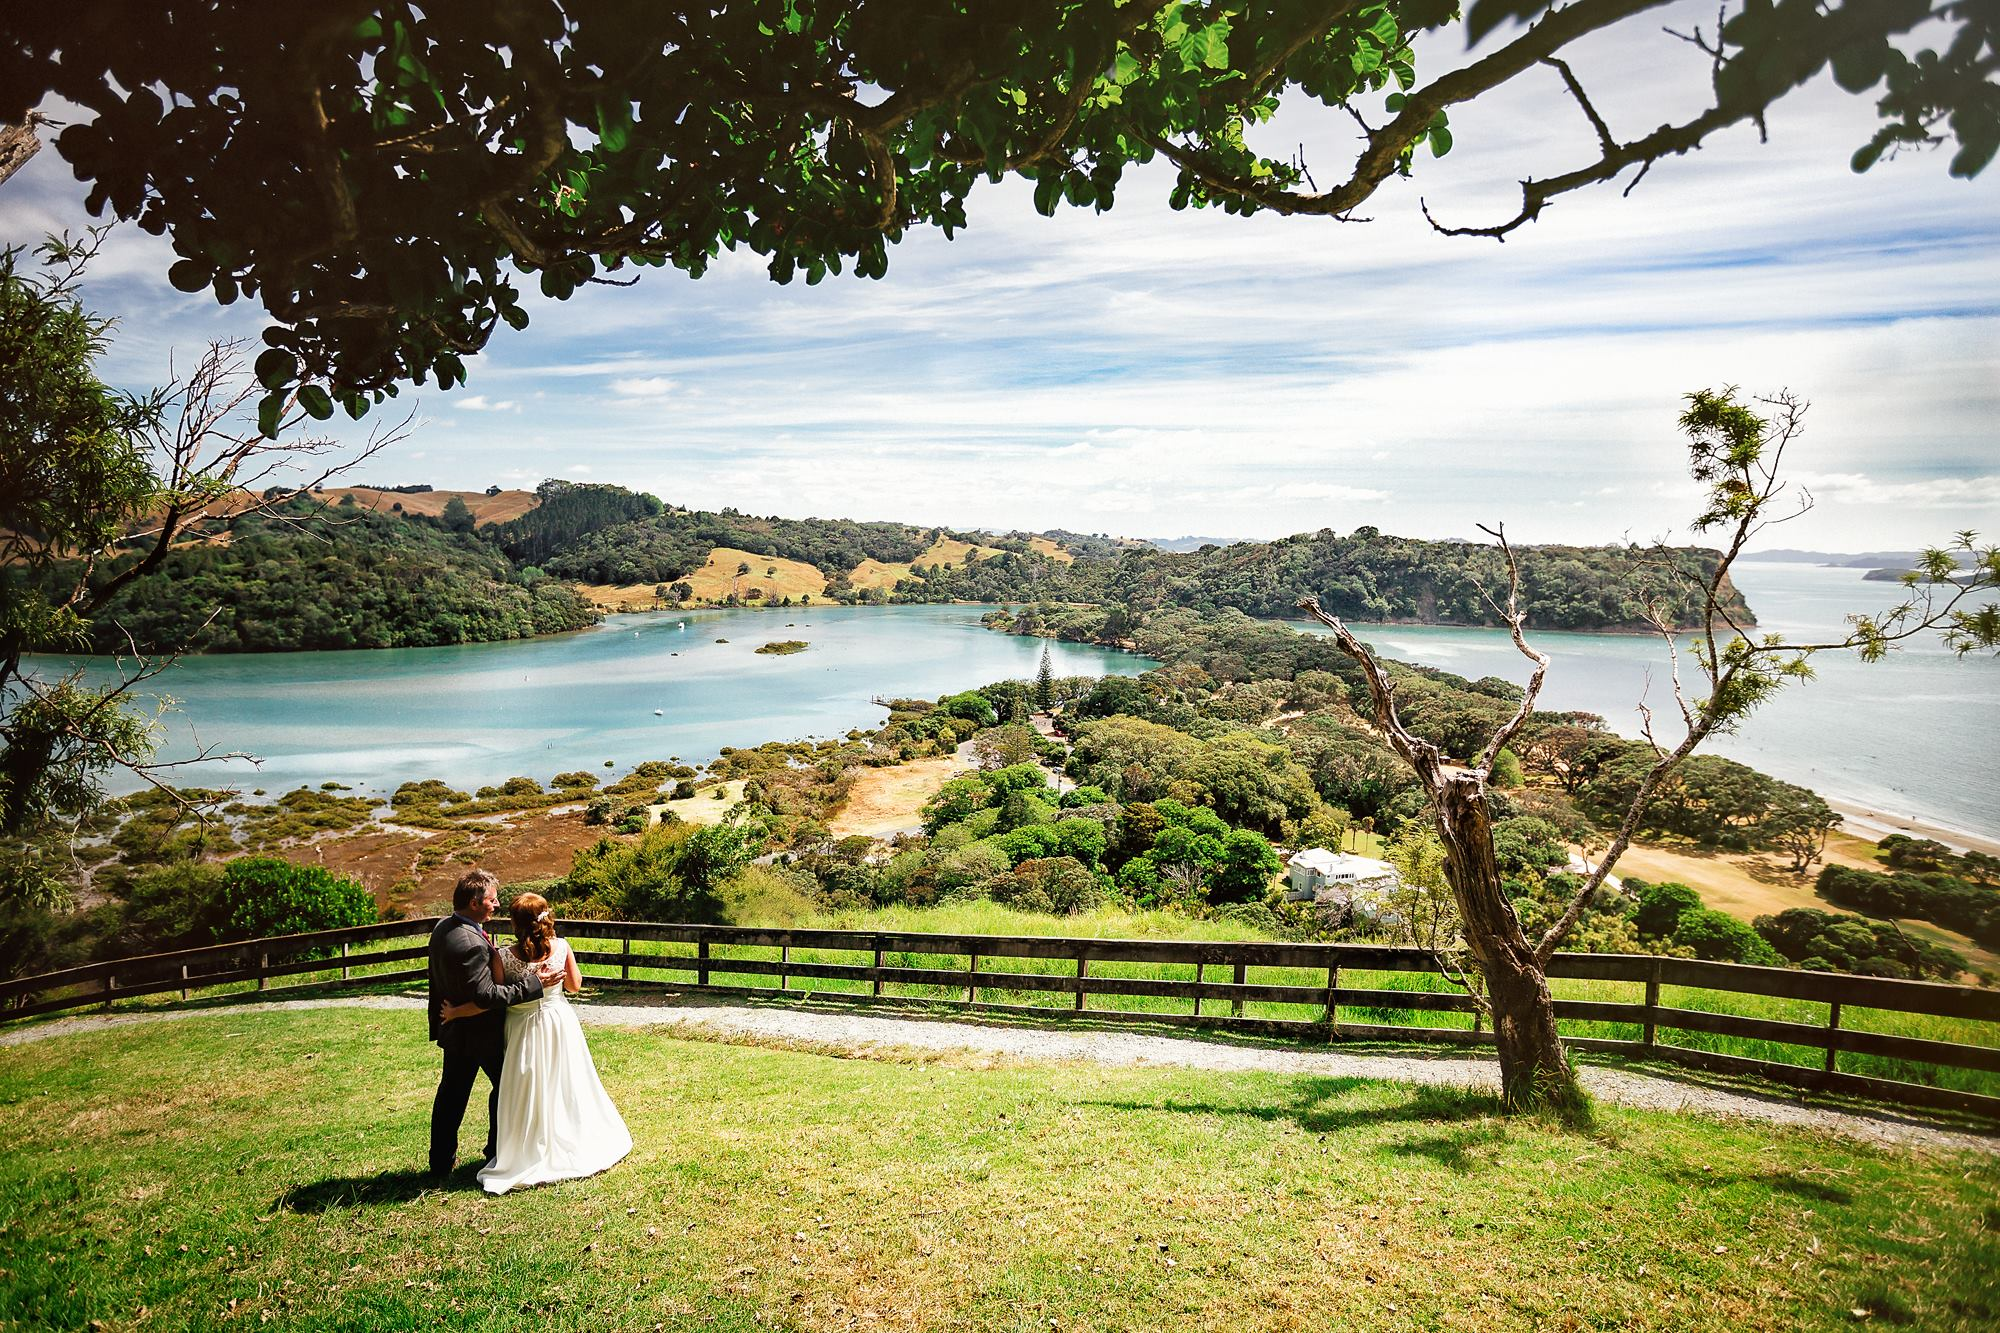 Wedding at the most beautiful and remote location eloping to New Zealand